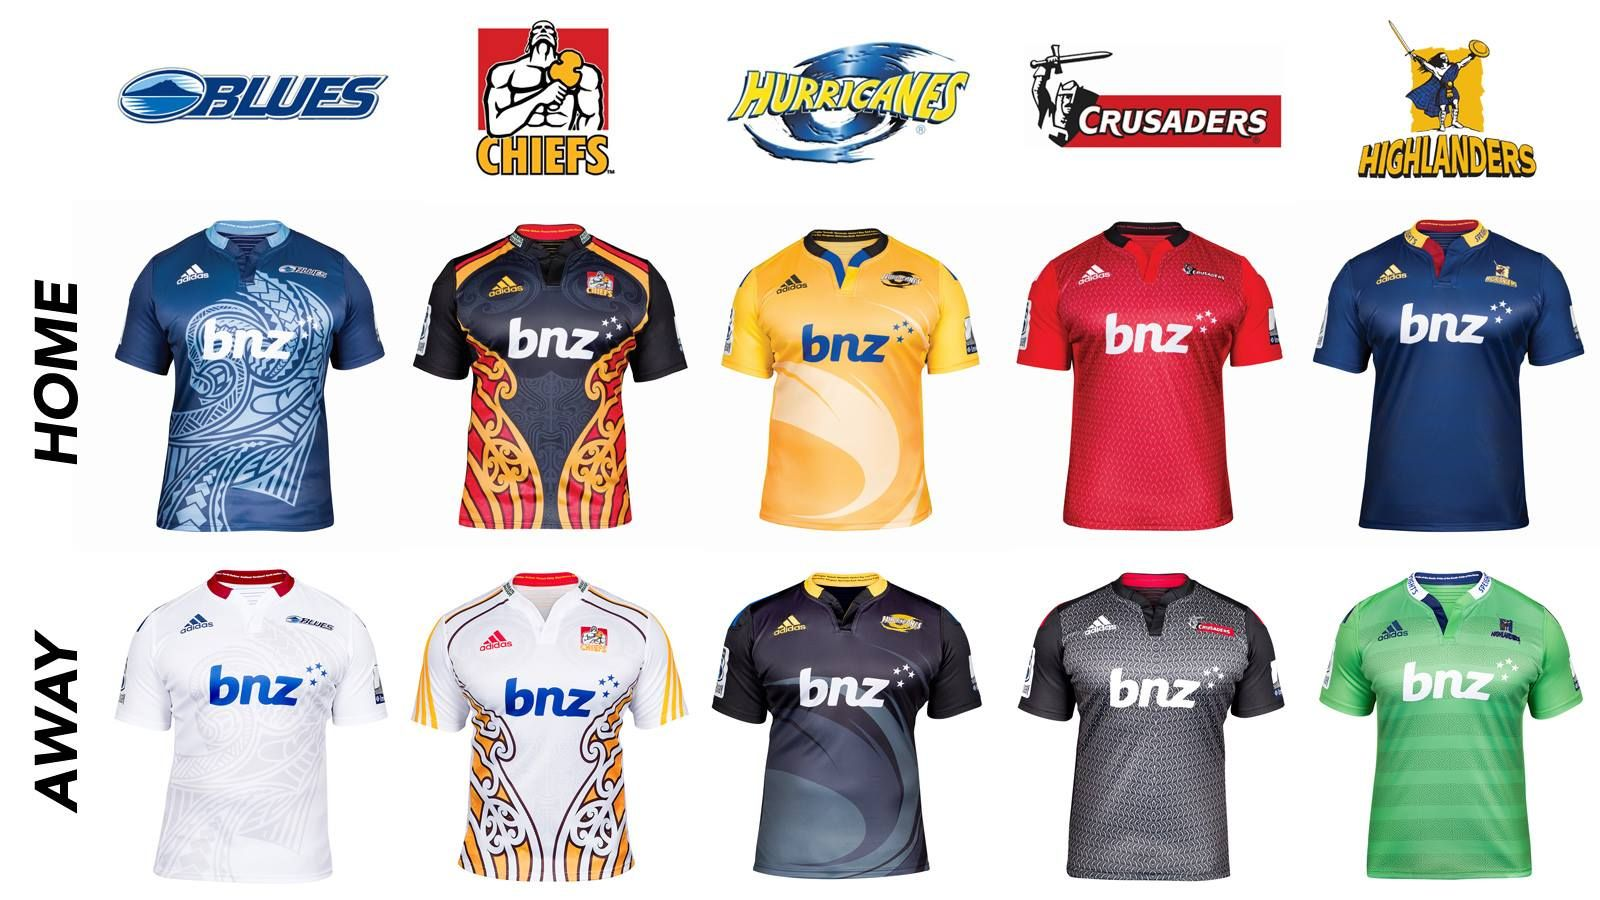 c7b56c5c35b 2014 Super Rugby jerseys for all New Zealand teams | Rugby | Rugby ...